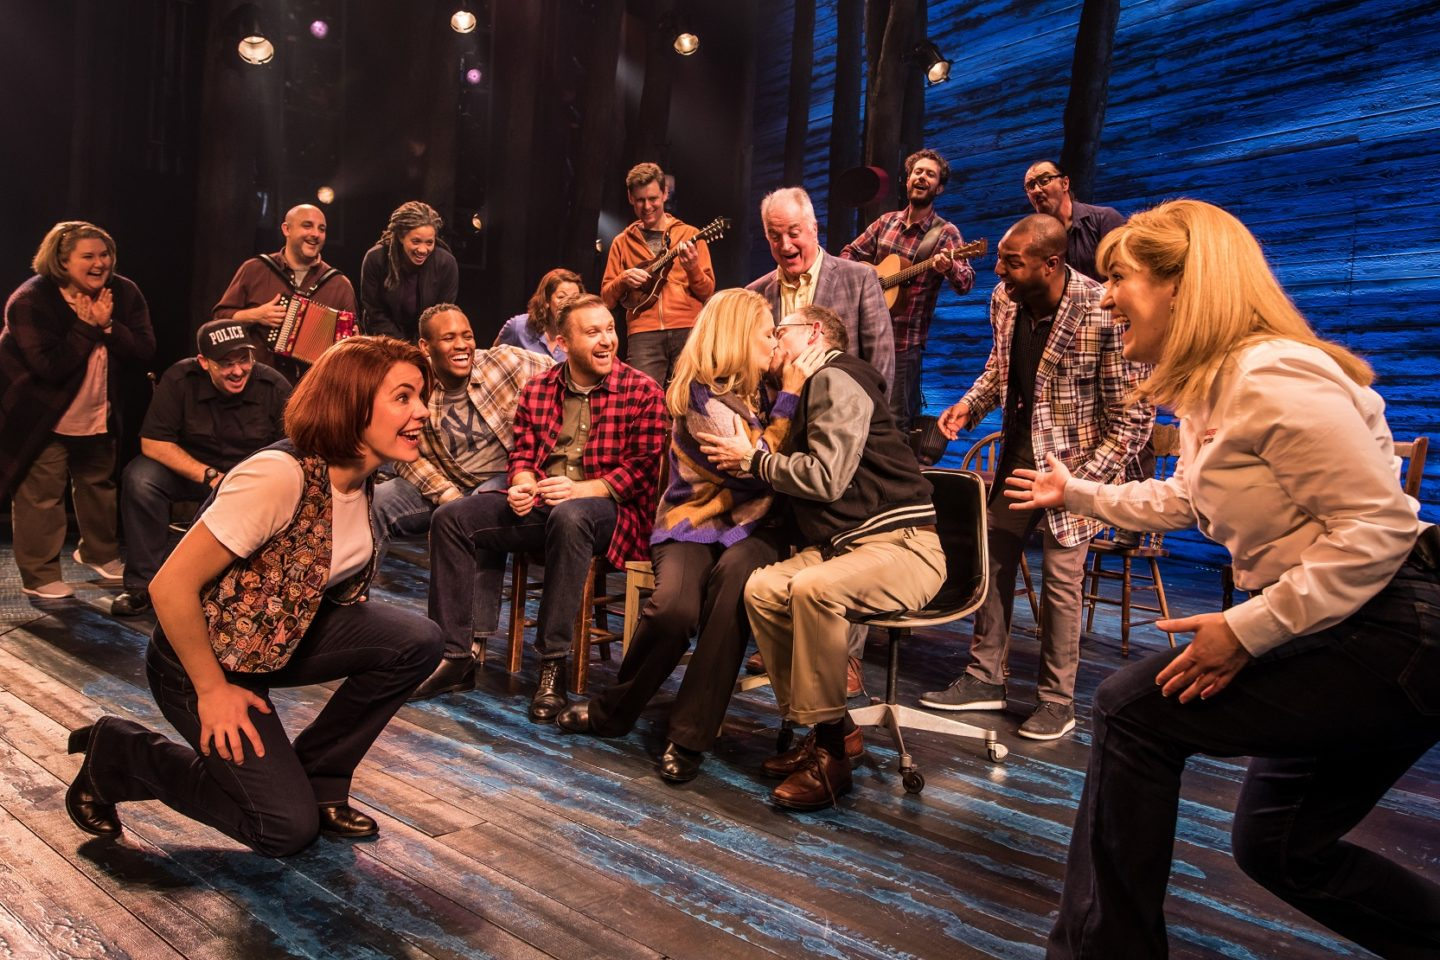 9/11, 18 Years On: How Come From Away Delivers a New Message about the Tragedy